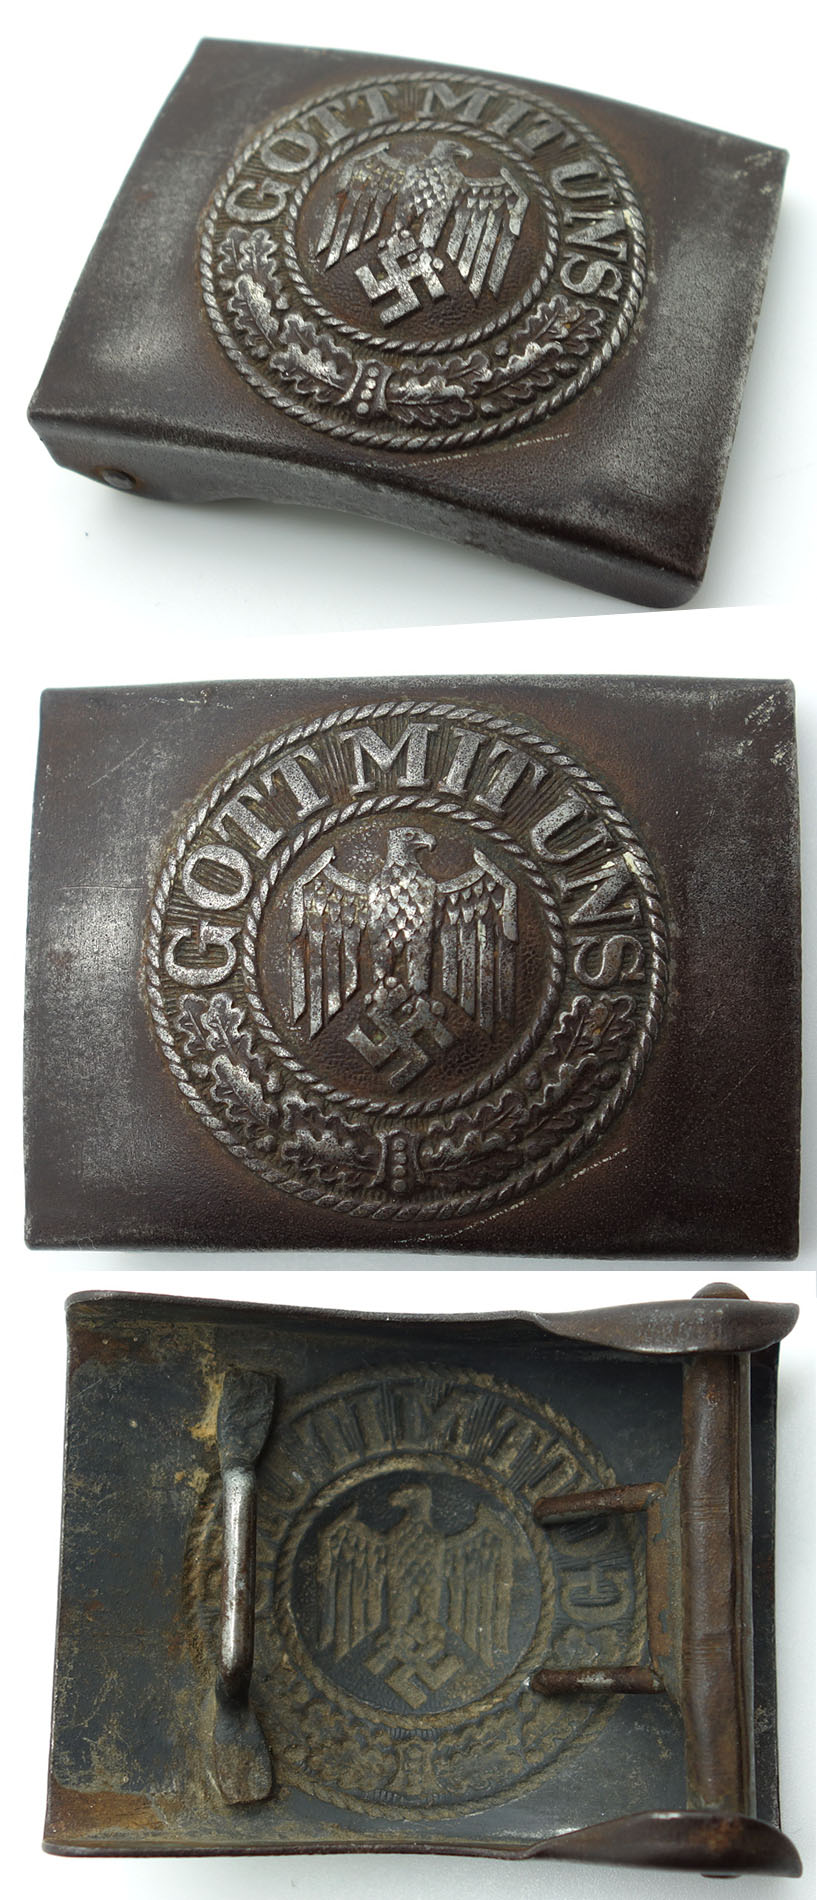 Coastal Artillery Buckle